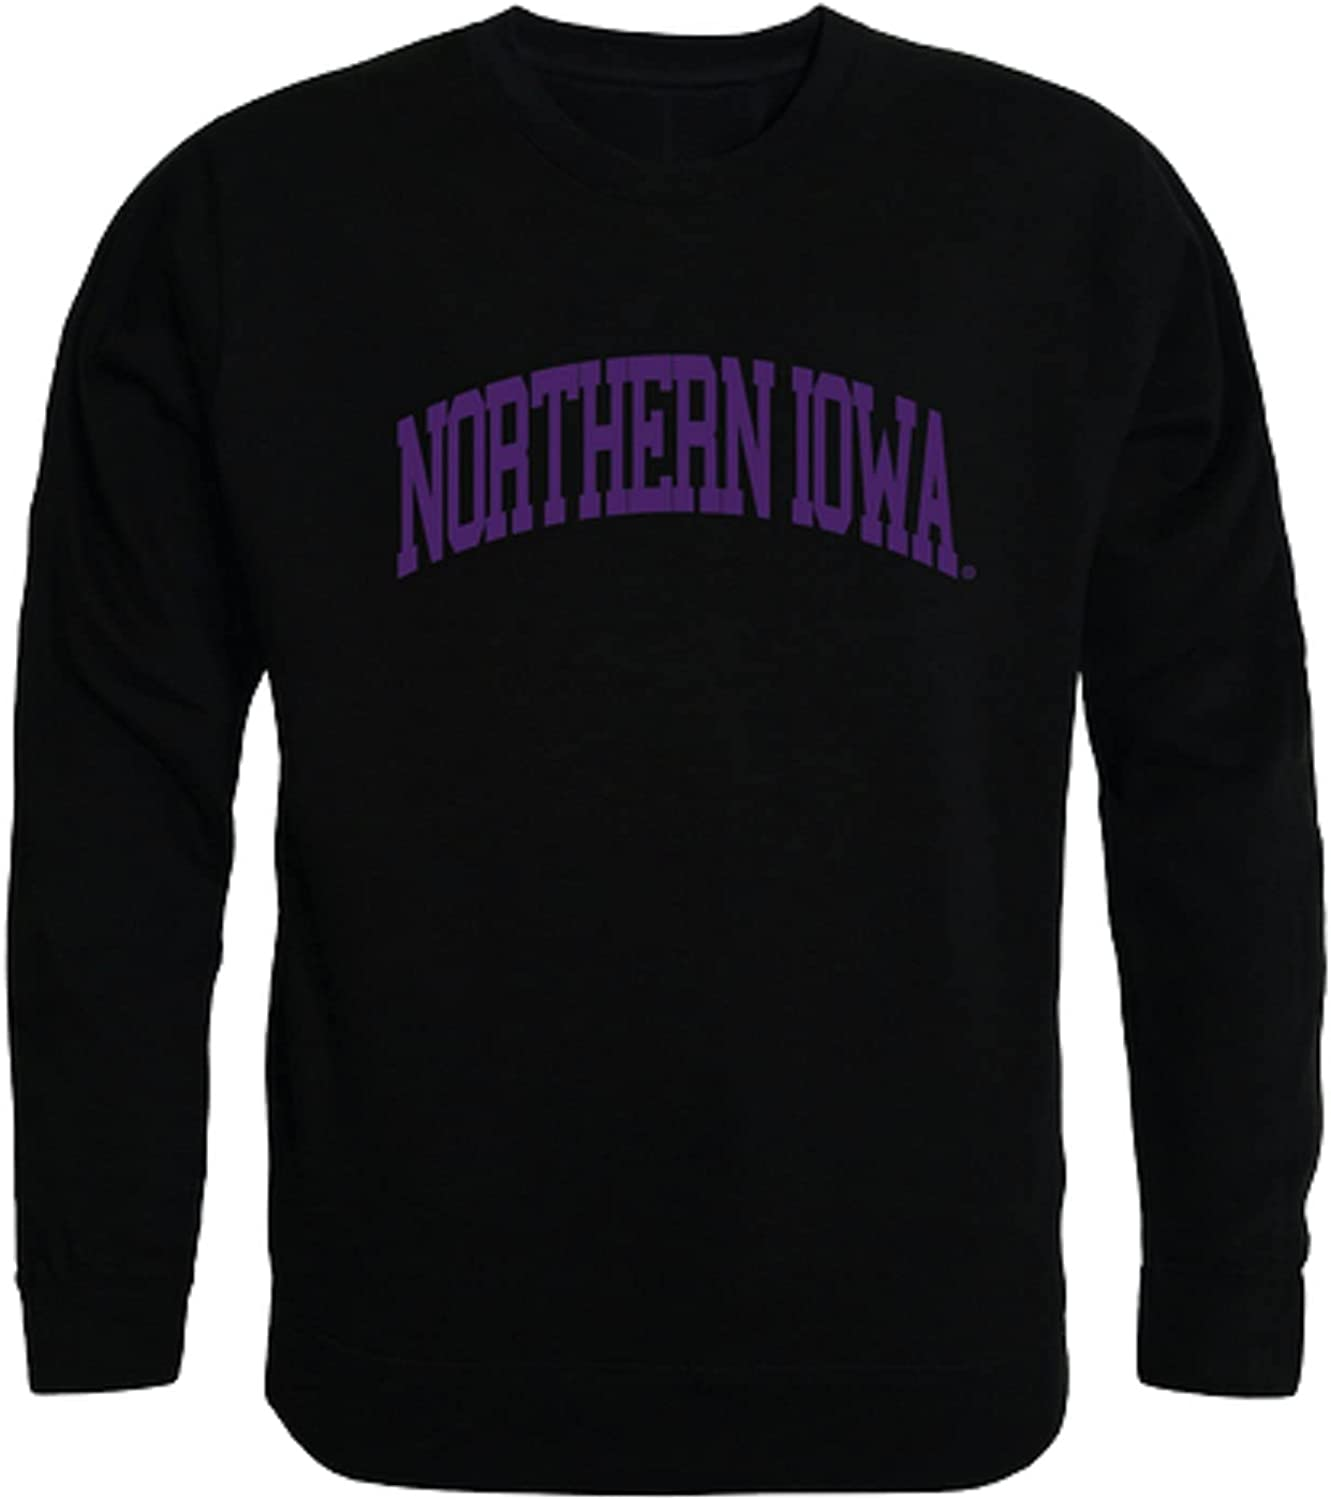 University Of Northern Iowa Panthers UNI Sweatshir Outlet 5 ☆ very popular ☆ Free Shipping Crewneck Arch